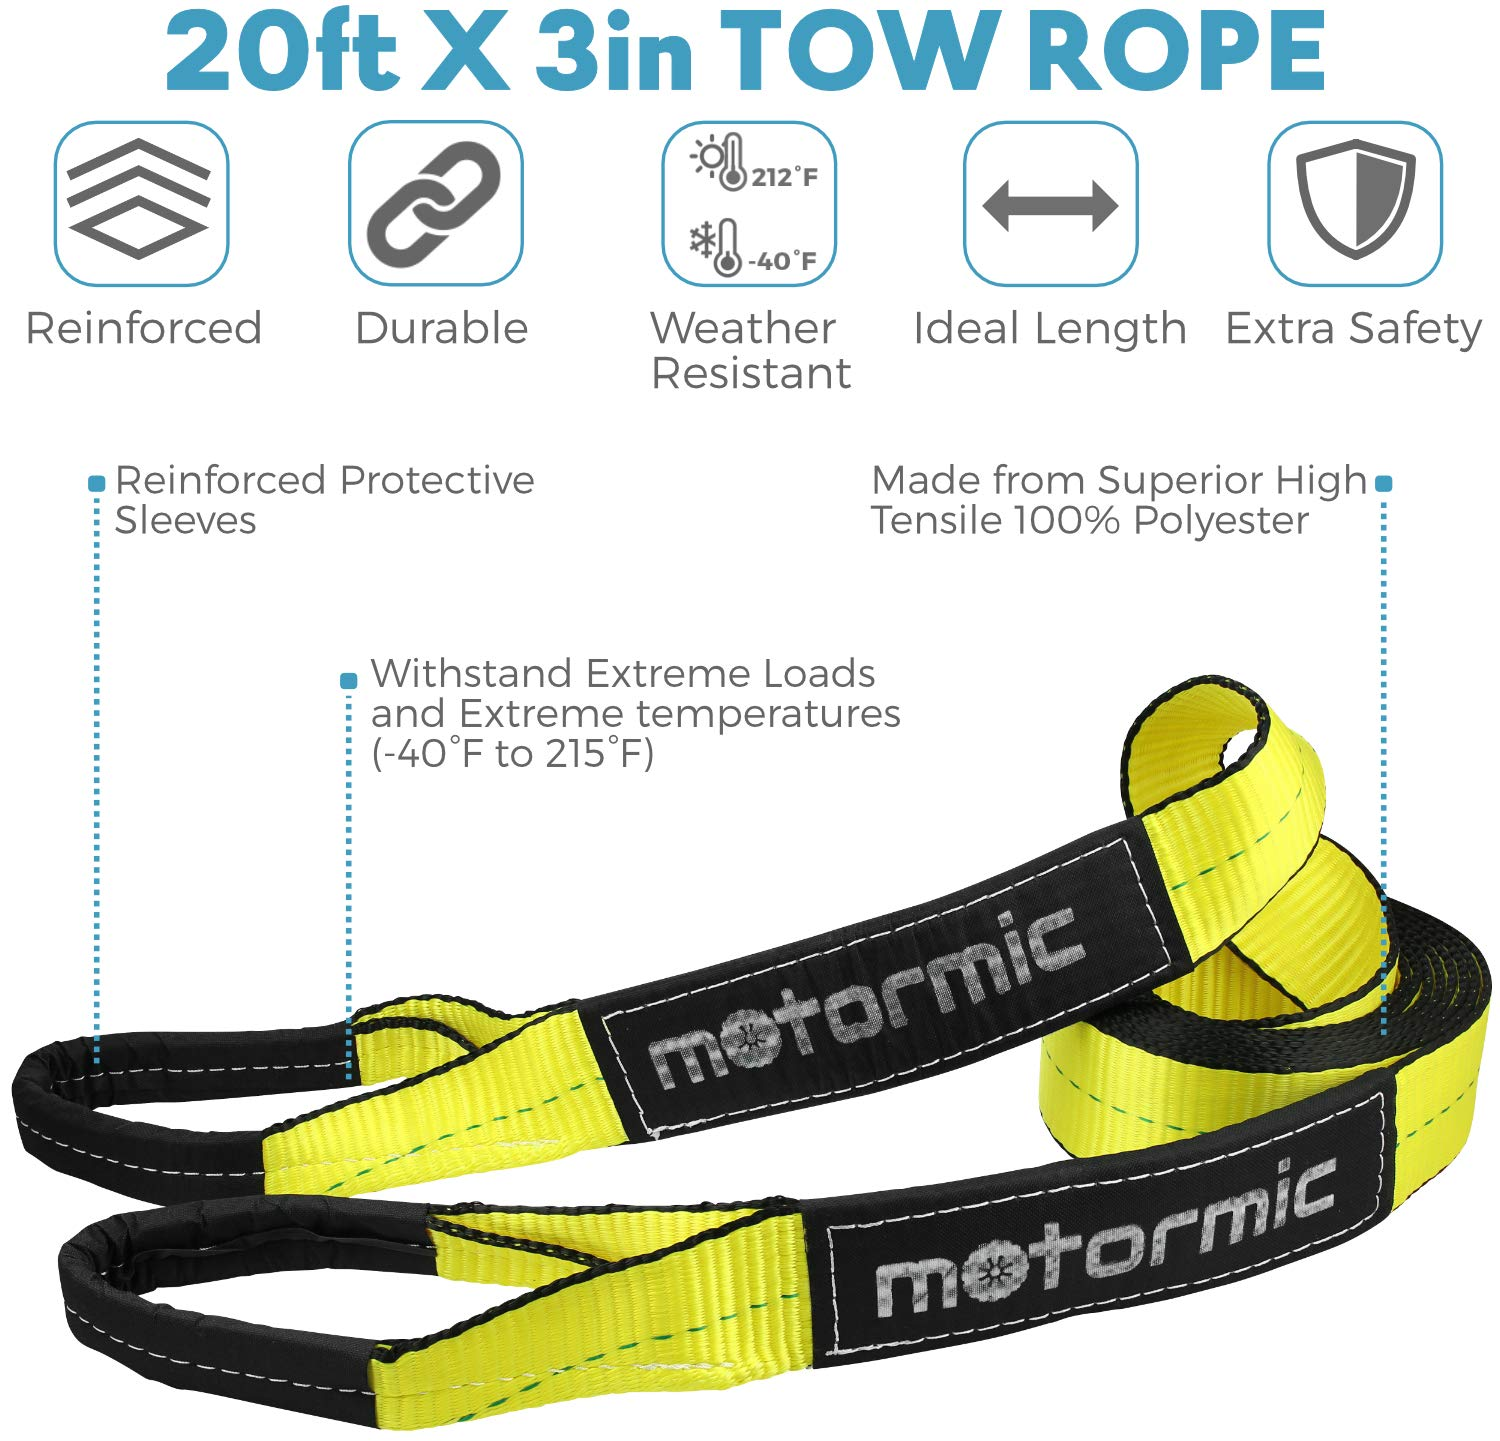 ATV 30,000 lbs. 3//4 D Ring Shackles Car 2pcs. 20 ft x 3 in Off Road Vehicle Towing Truck Tow Rope Heavy Duty Straps for Winch Motormic Tow Strap Recovery Kit + Storage Bag